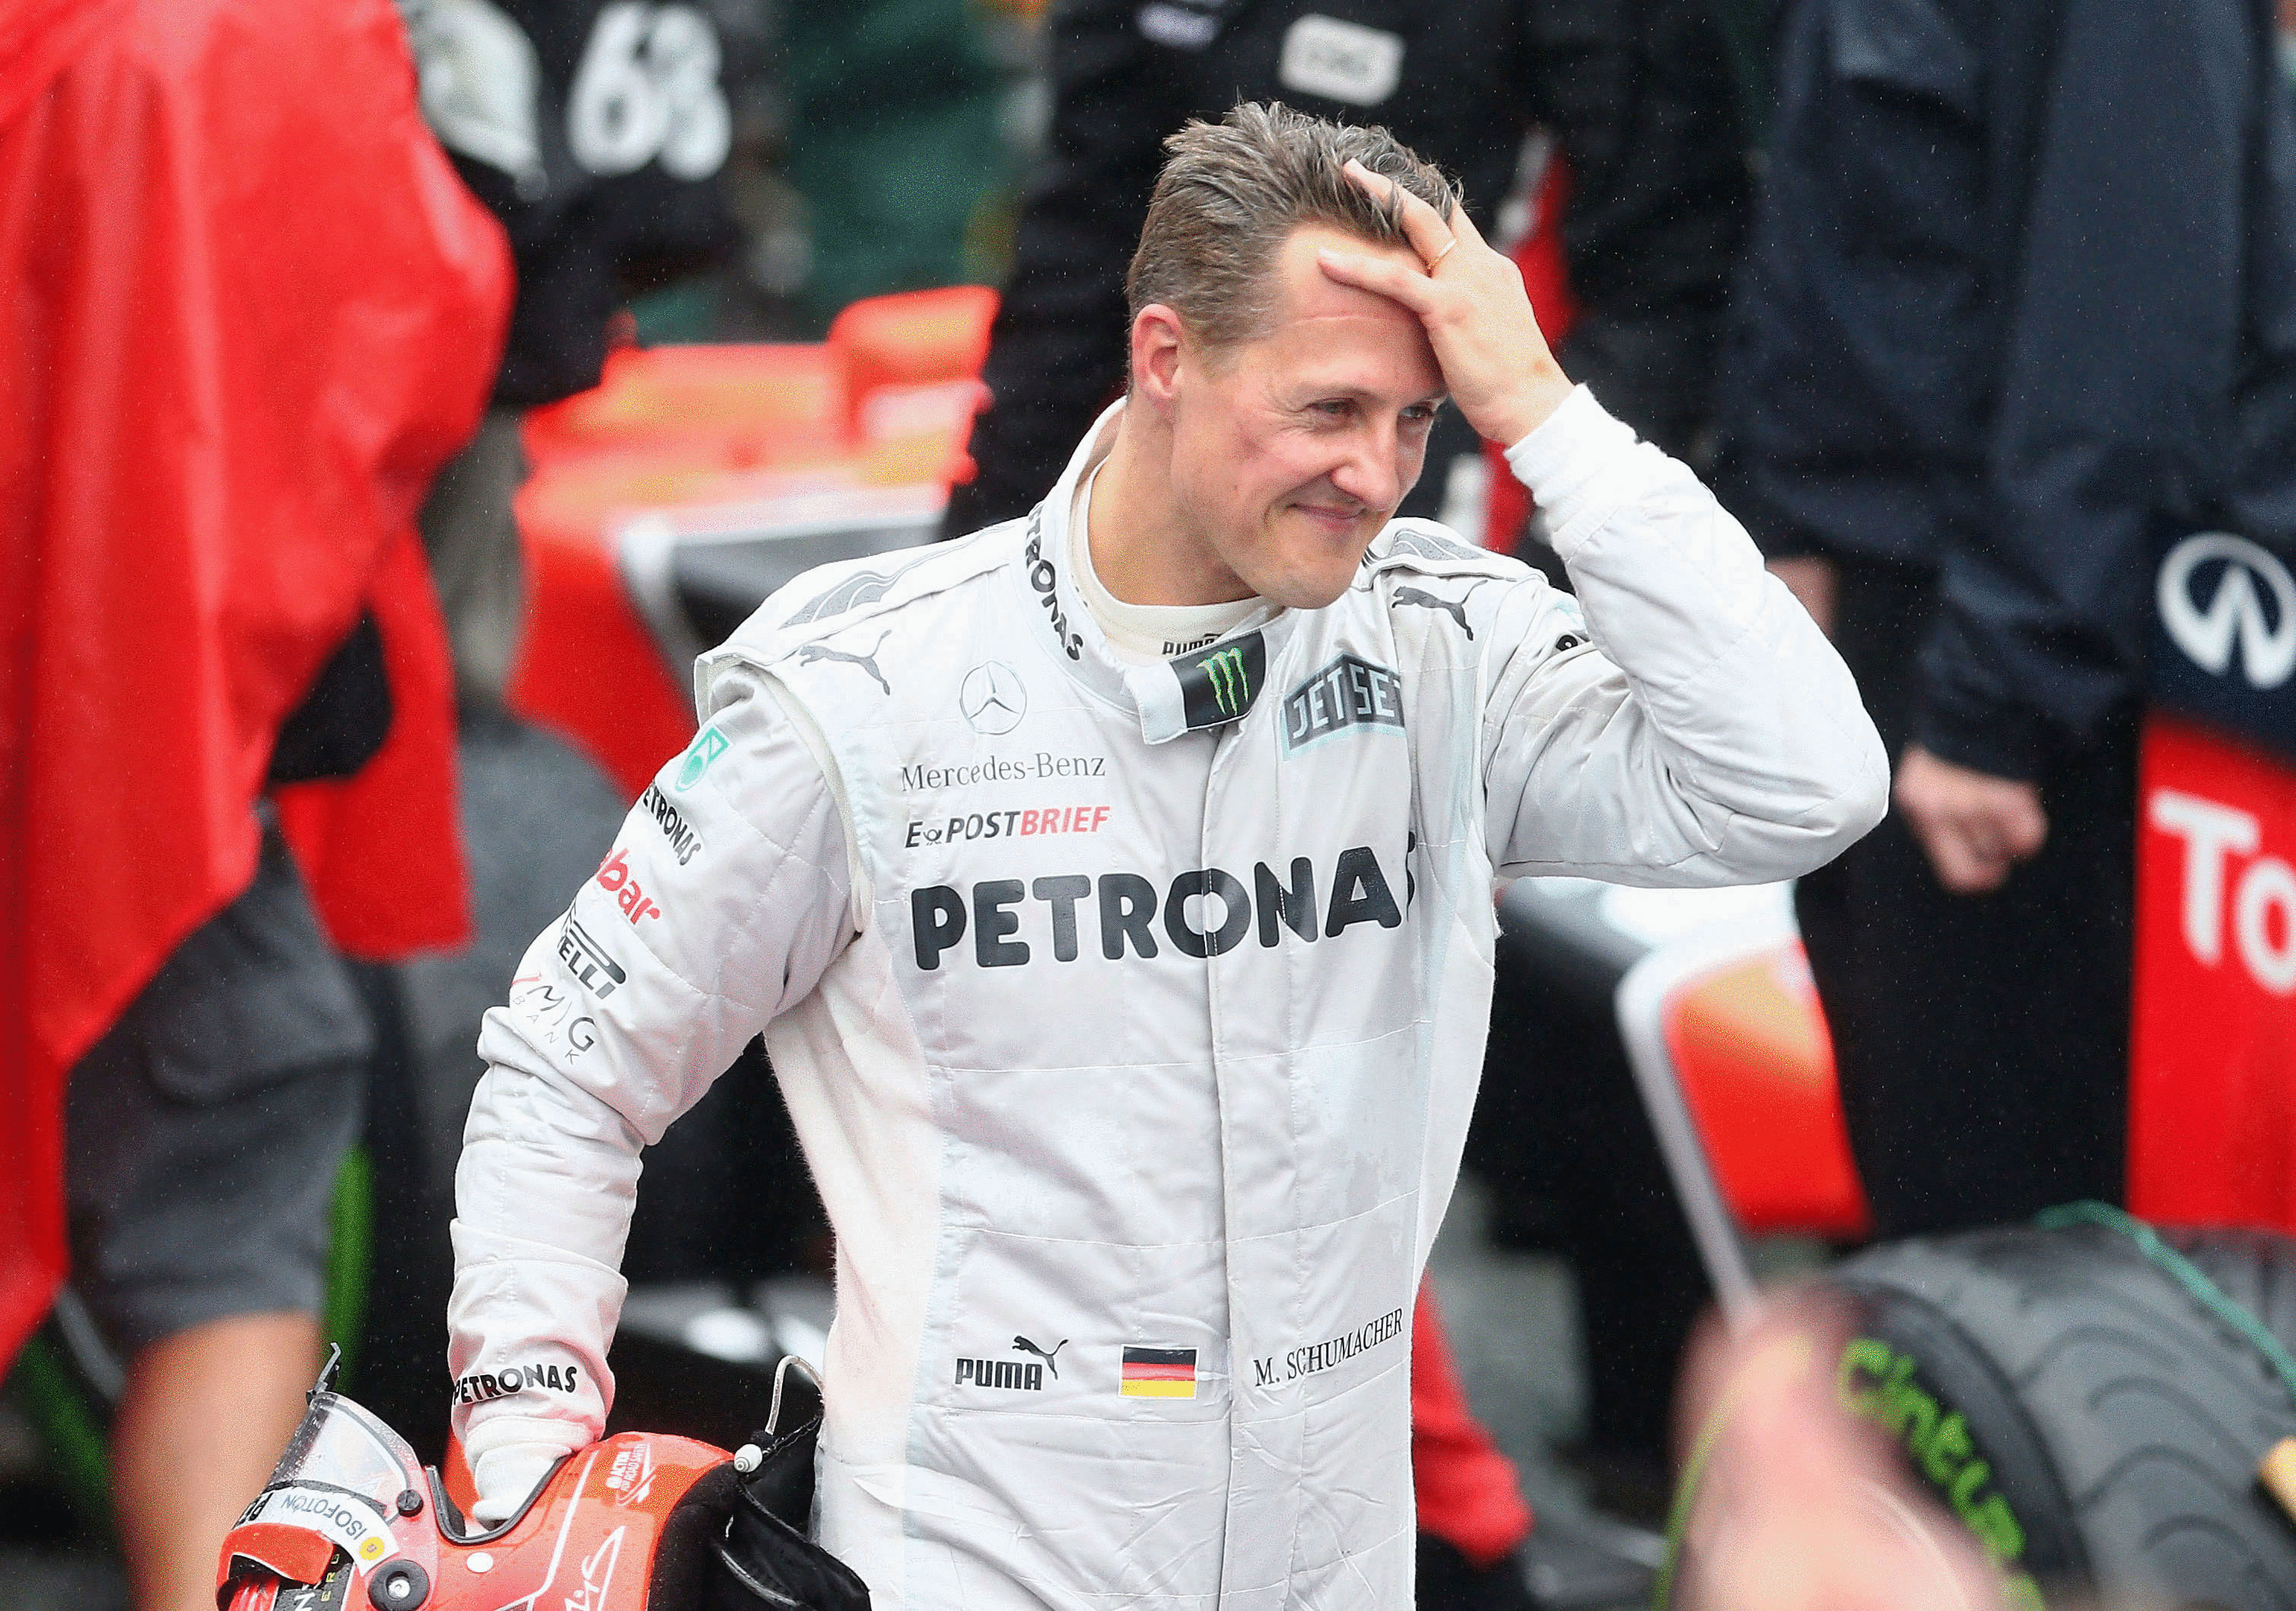 michael schumacher accidente